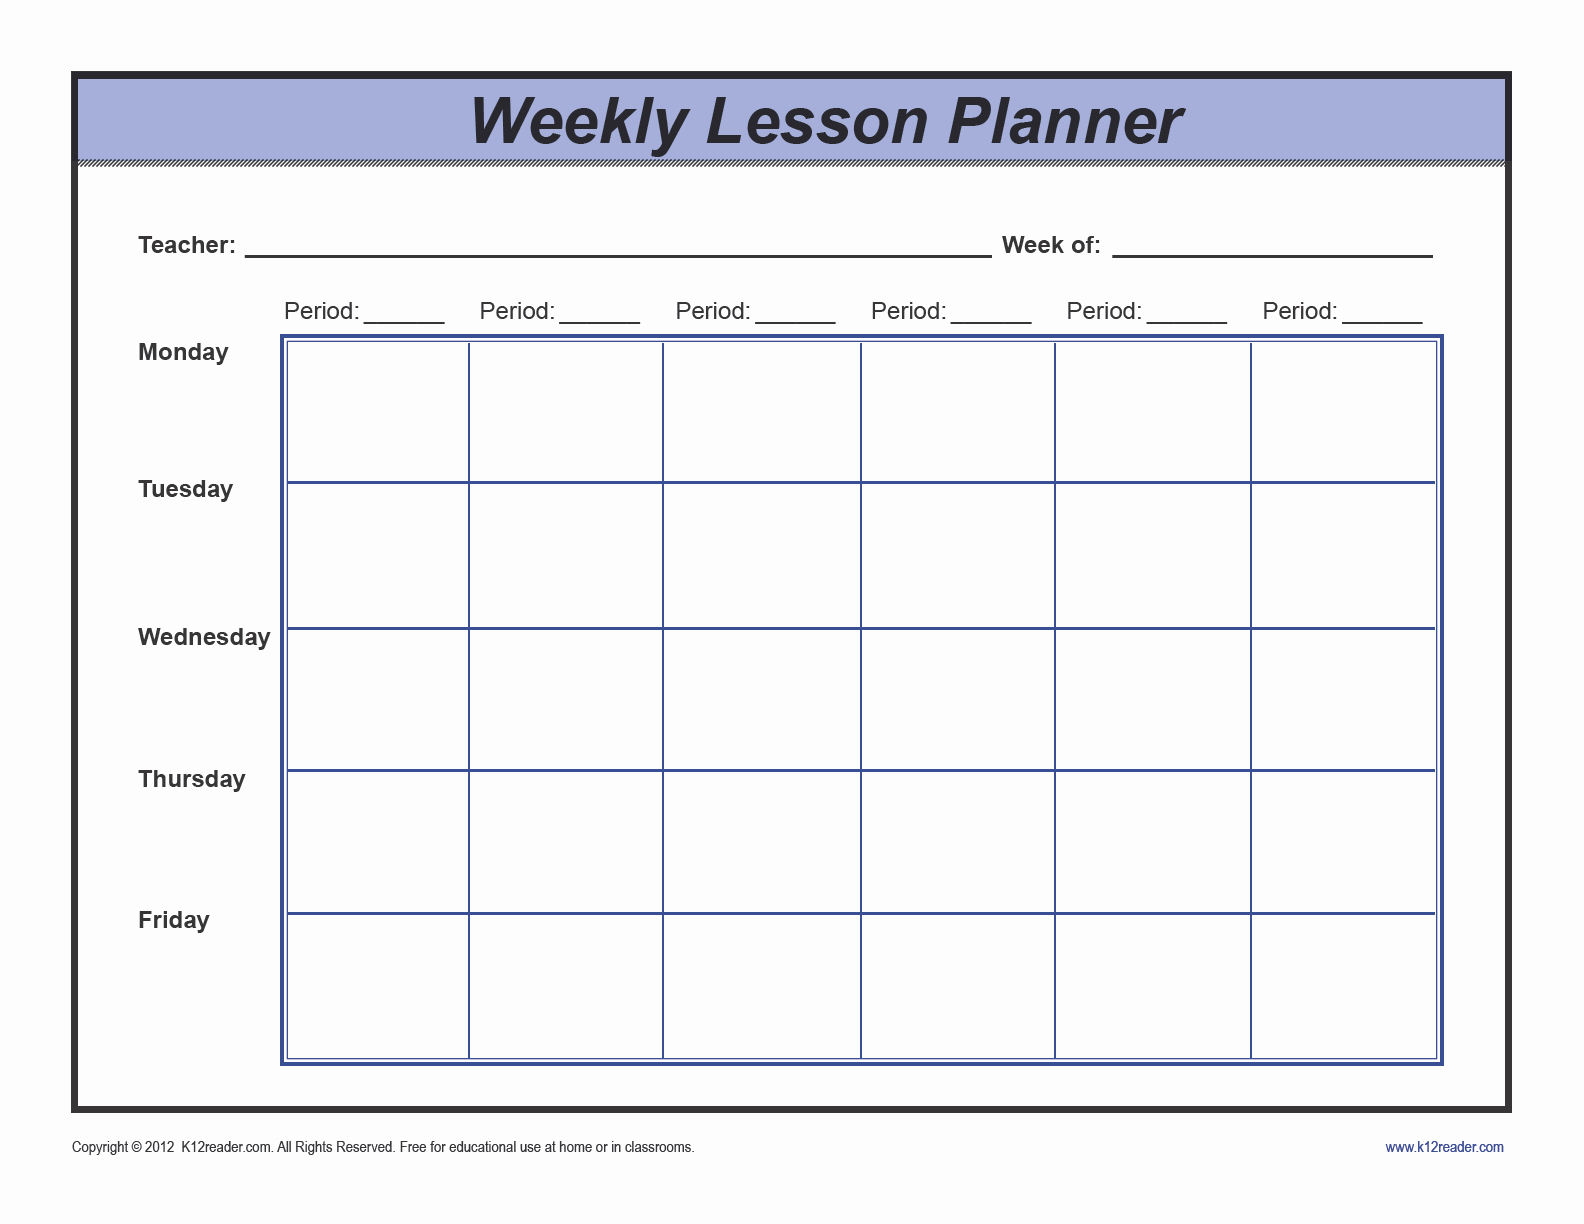 Weekly Lesson Plan Template Pdf New Download Weekly Lesson Plan Template Preschool